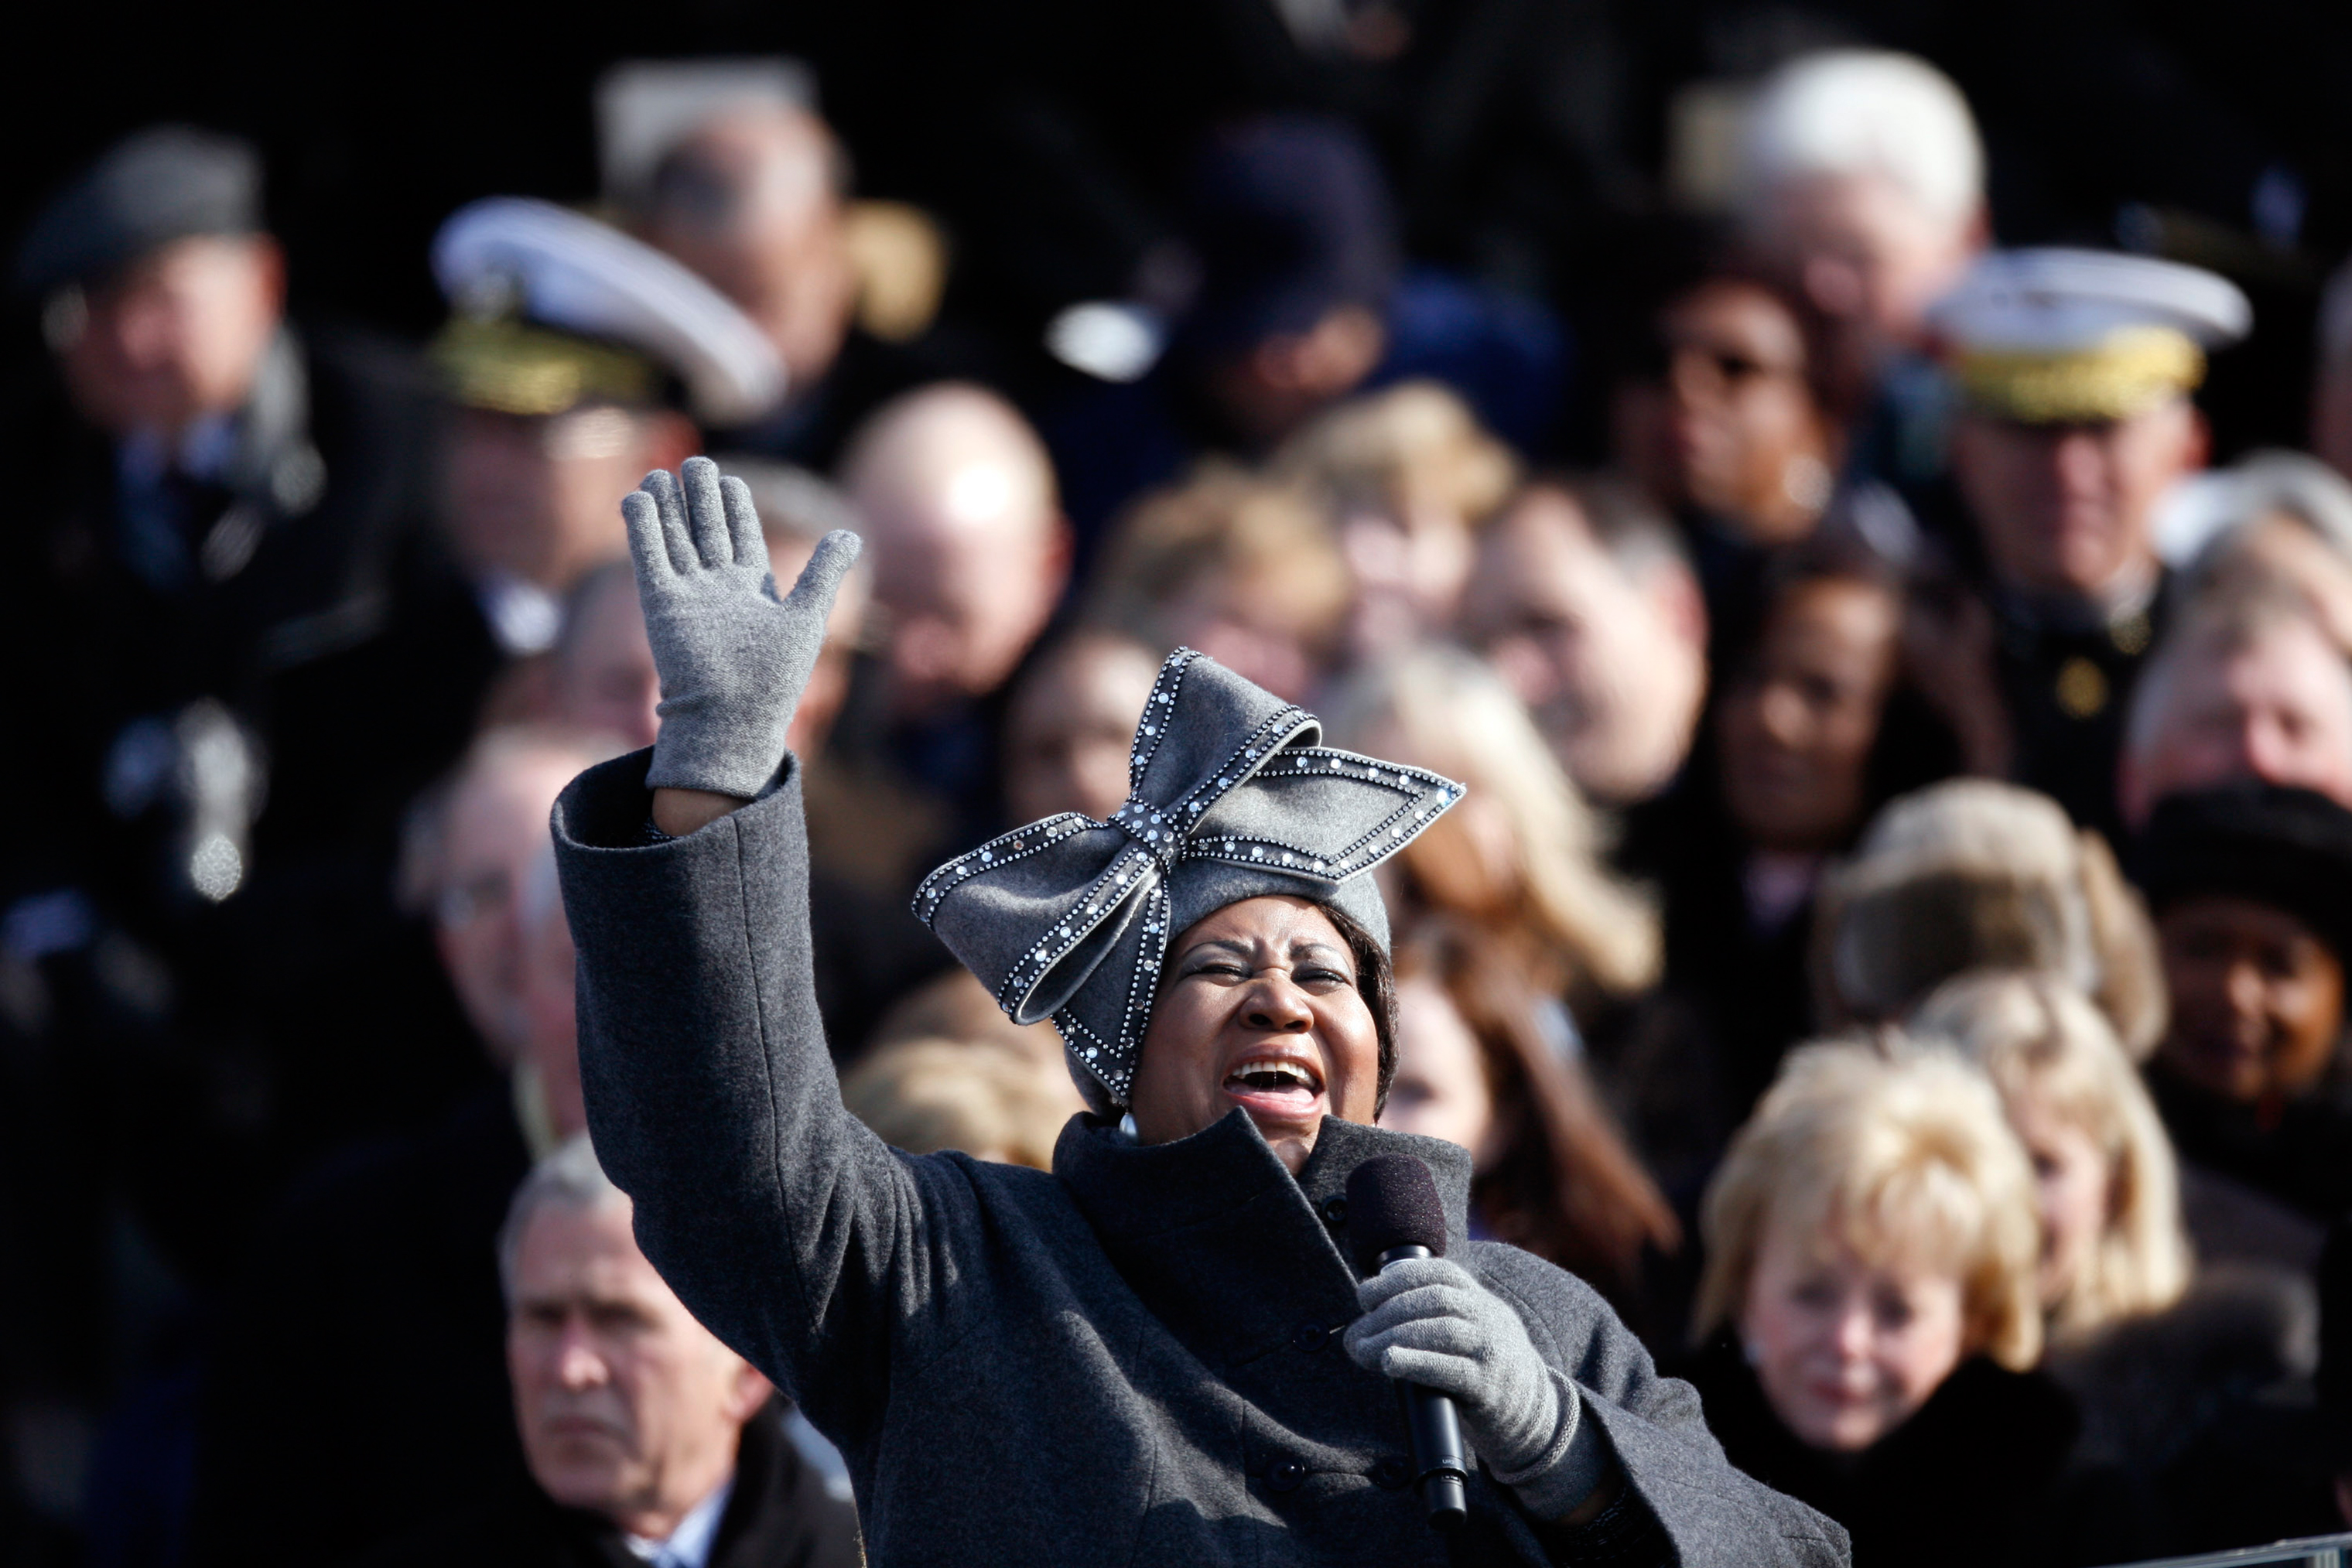 Aretha Franklin sings at the inauguration of President Barack Obama in Washington, D.C. on Jan. 20, 2009.